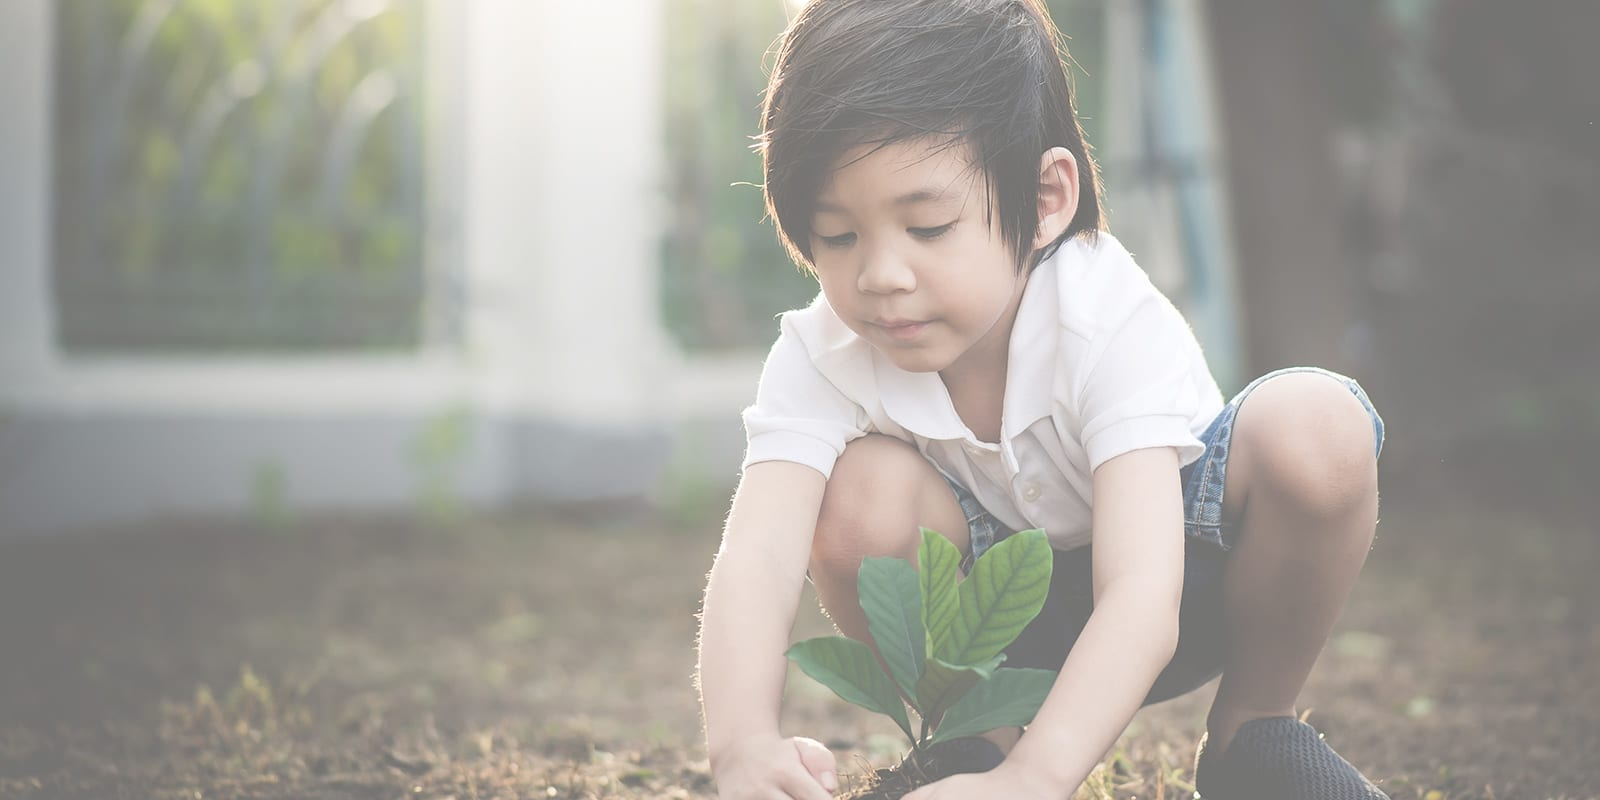 A toddler playing outside in the dirt helping plant a plant in the ground